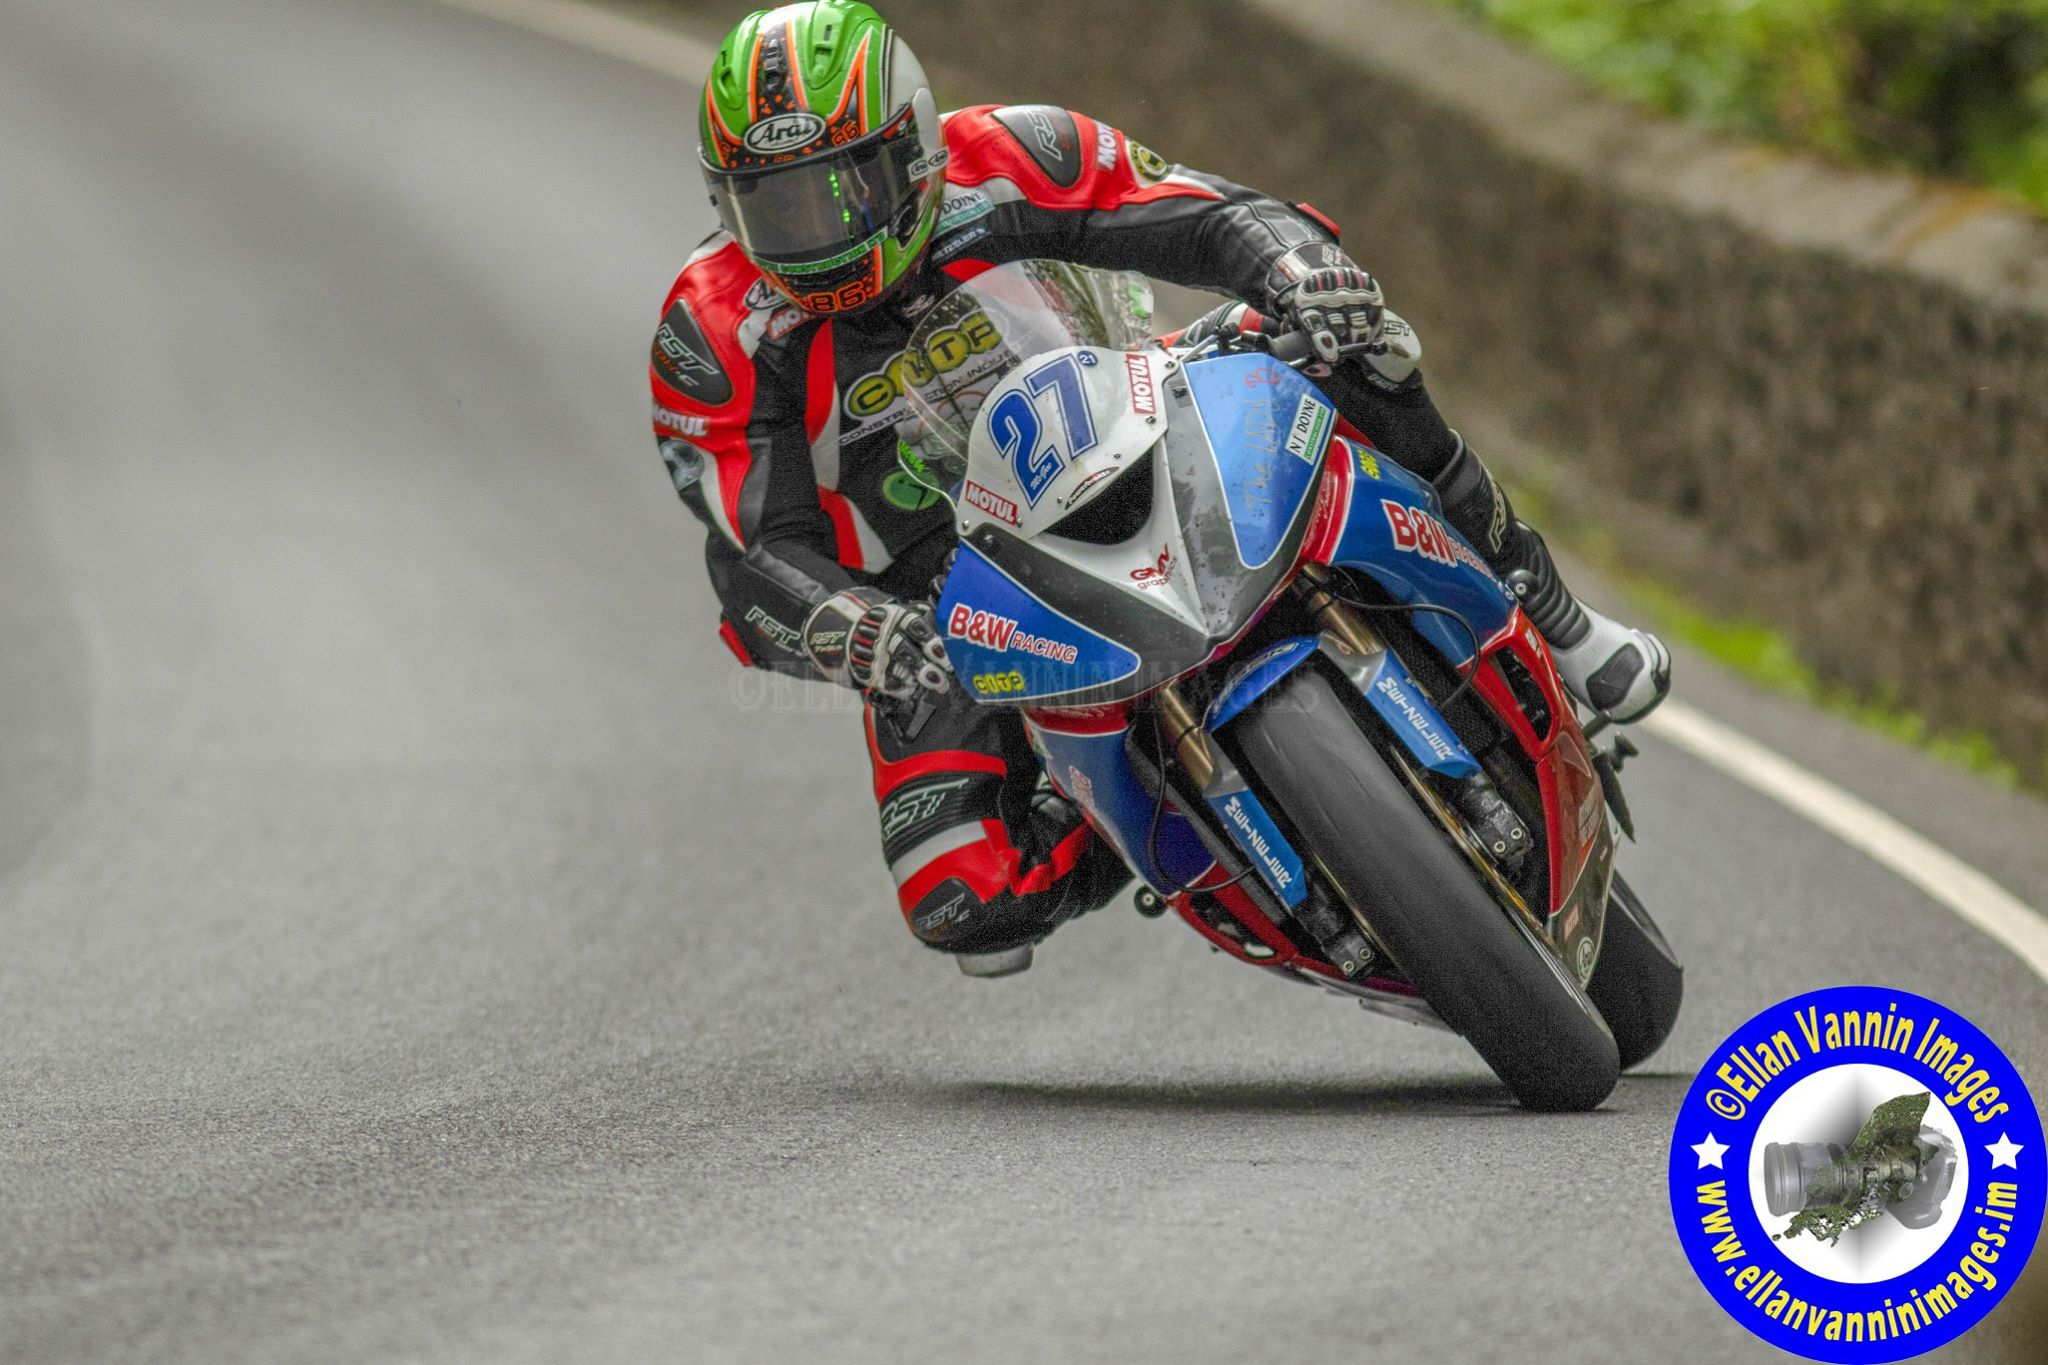 TT 2018: McGee Chalks Up Joint Personal Best TT Result In Opening Supersport Encounter